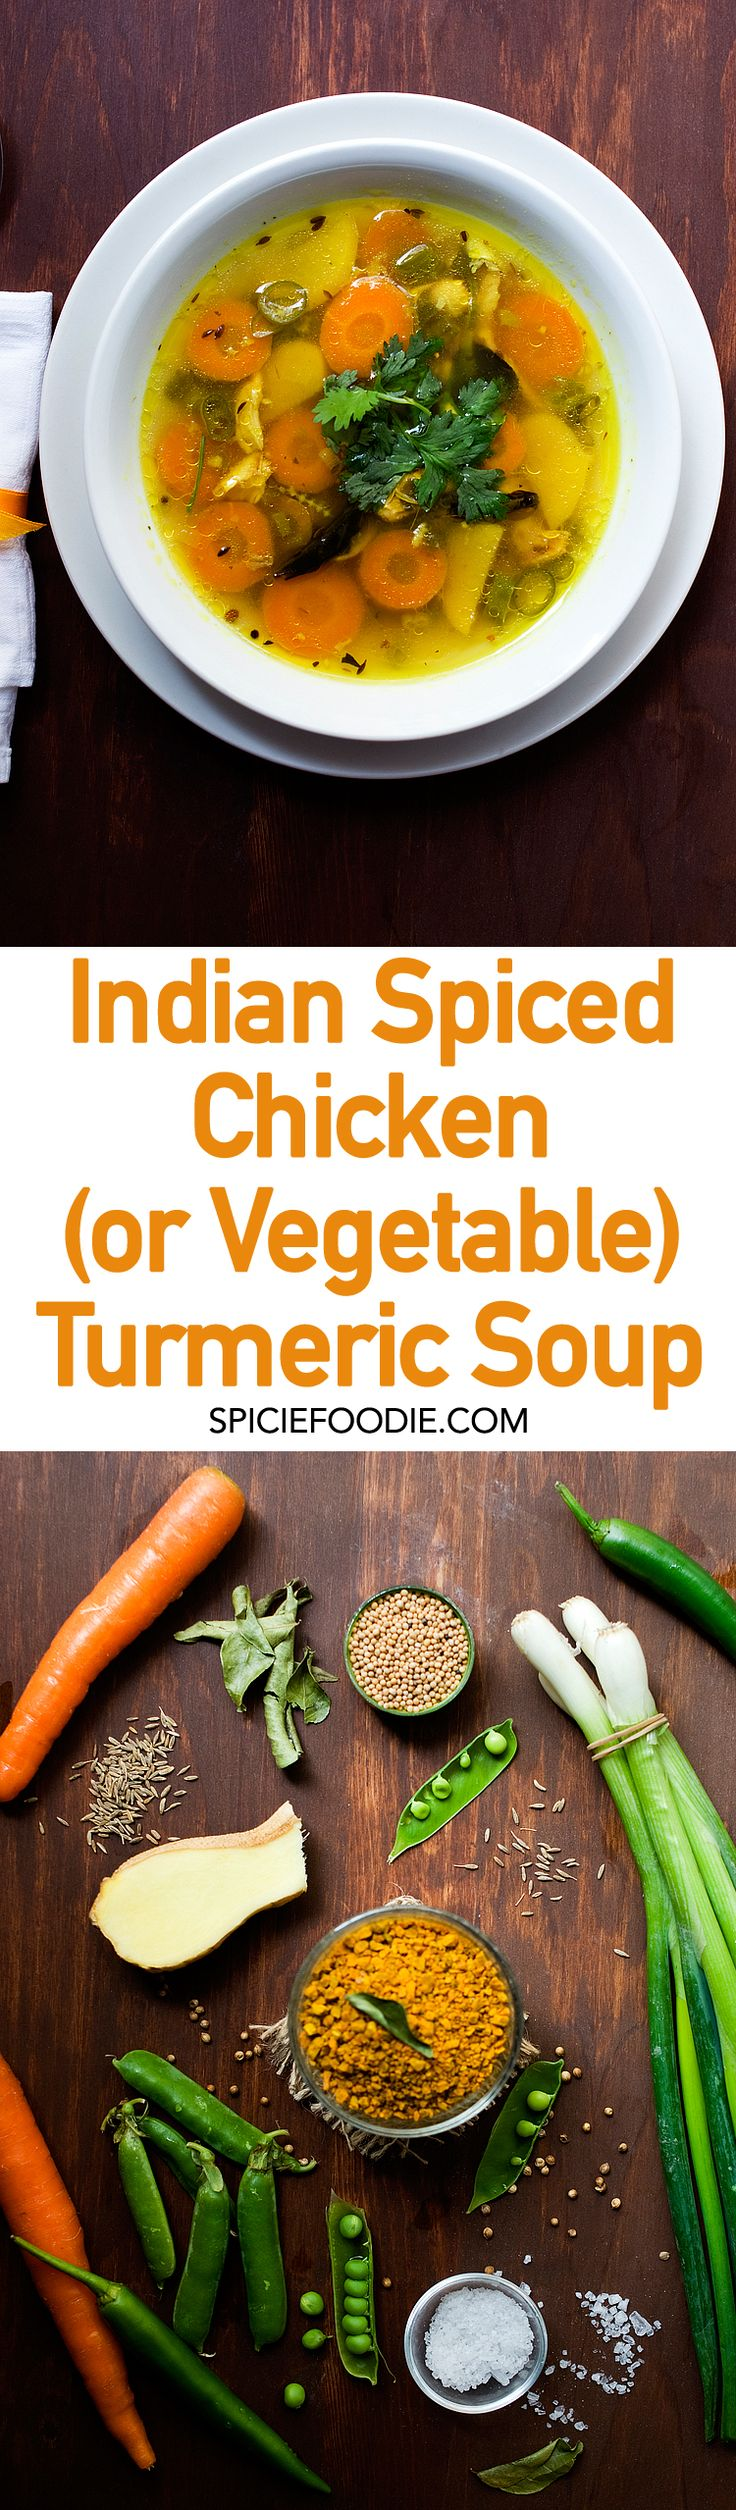 Indian Spiced Vegetable Turmeric Soup